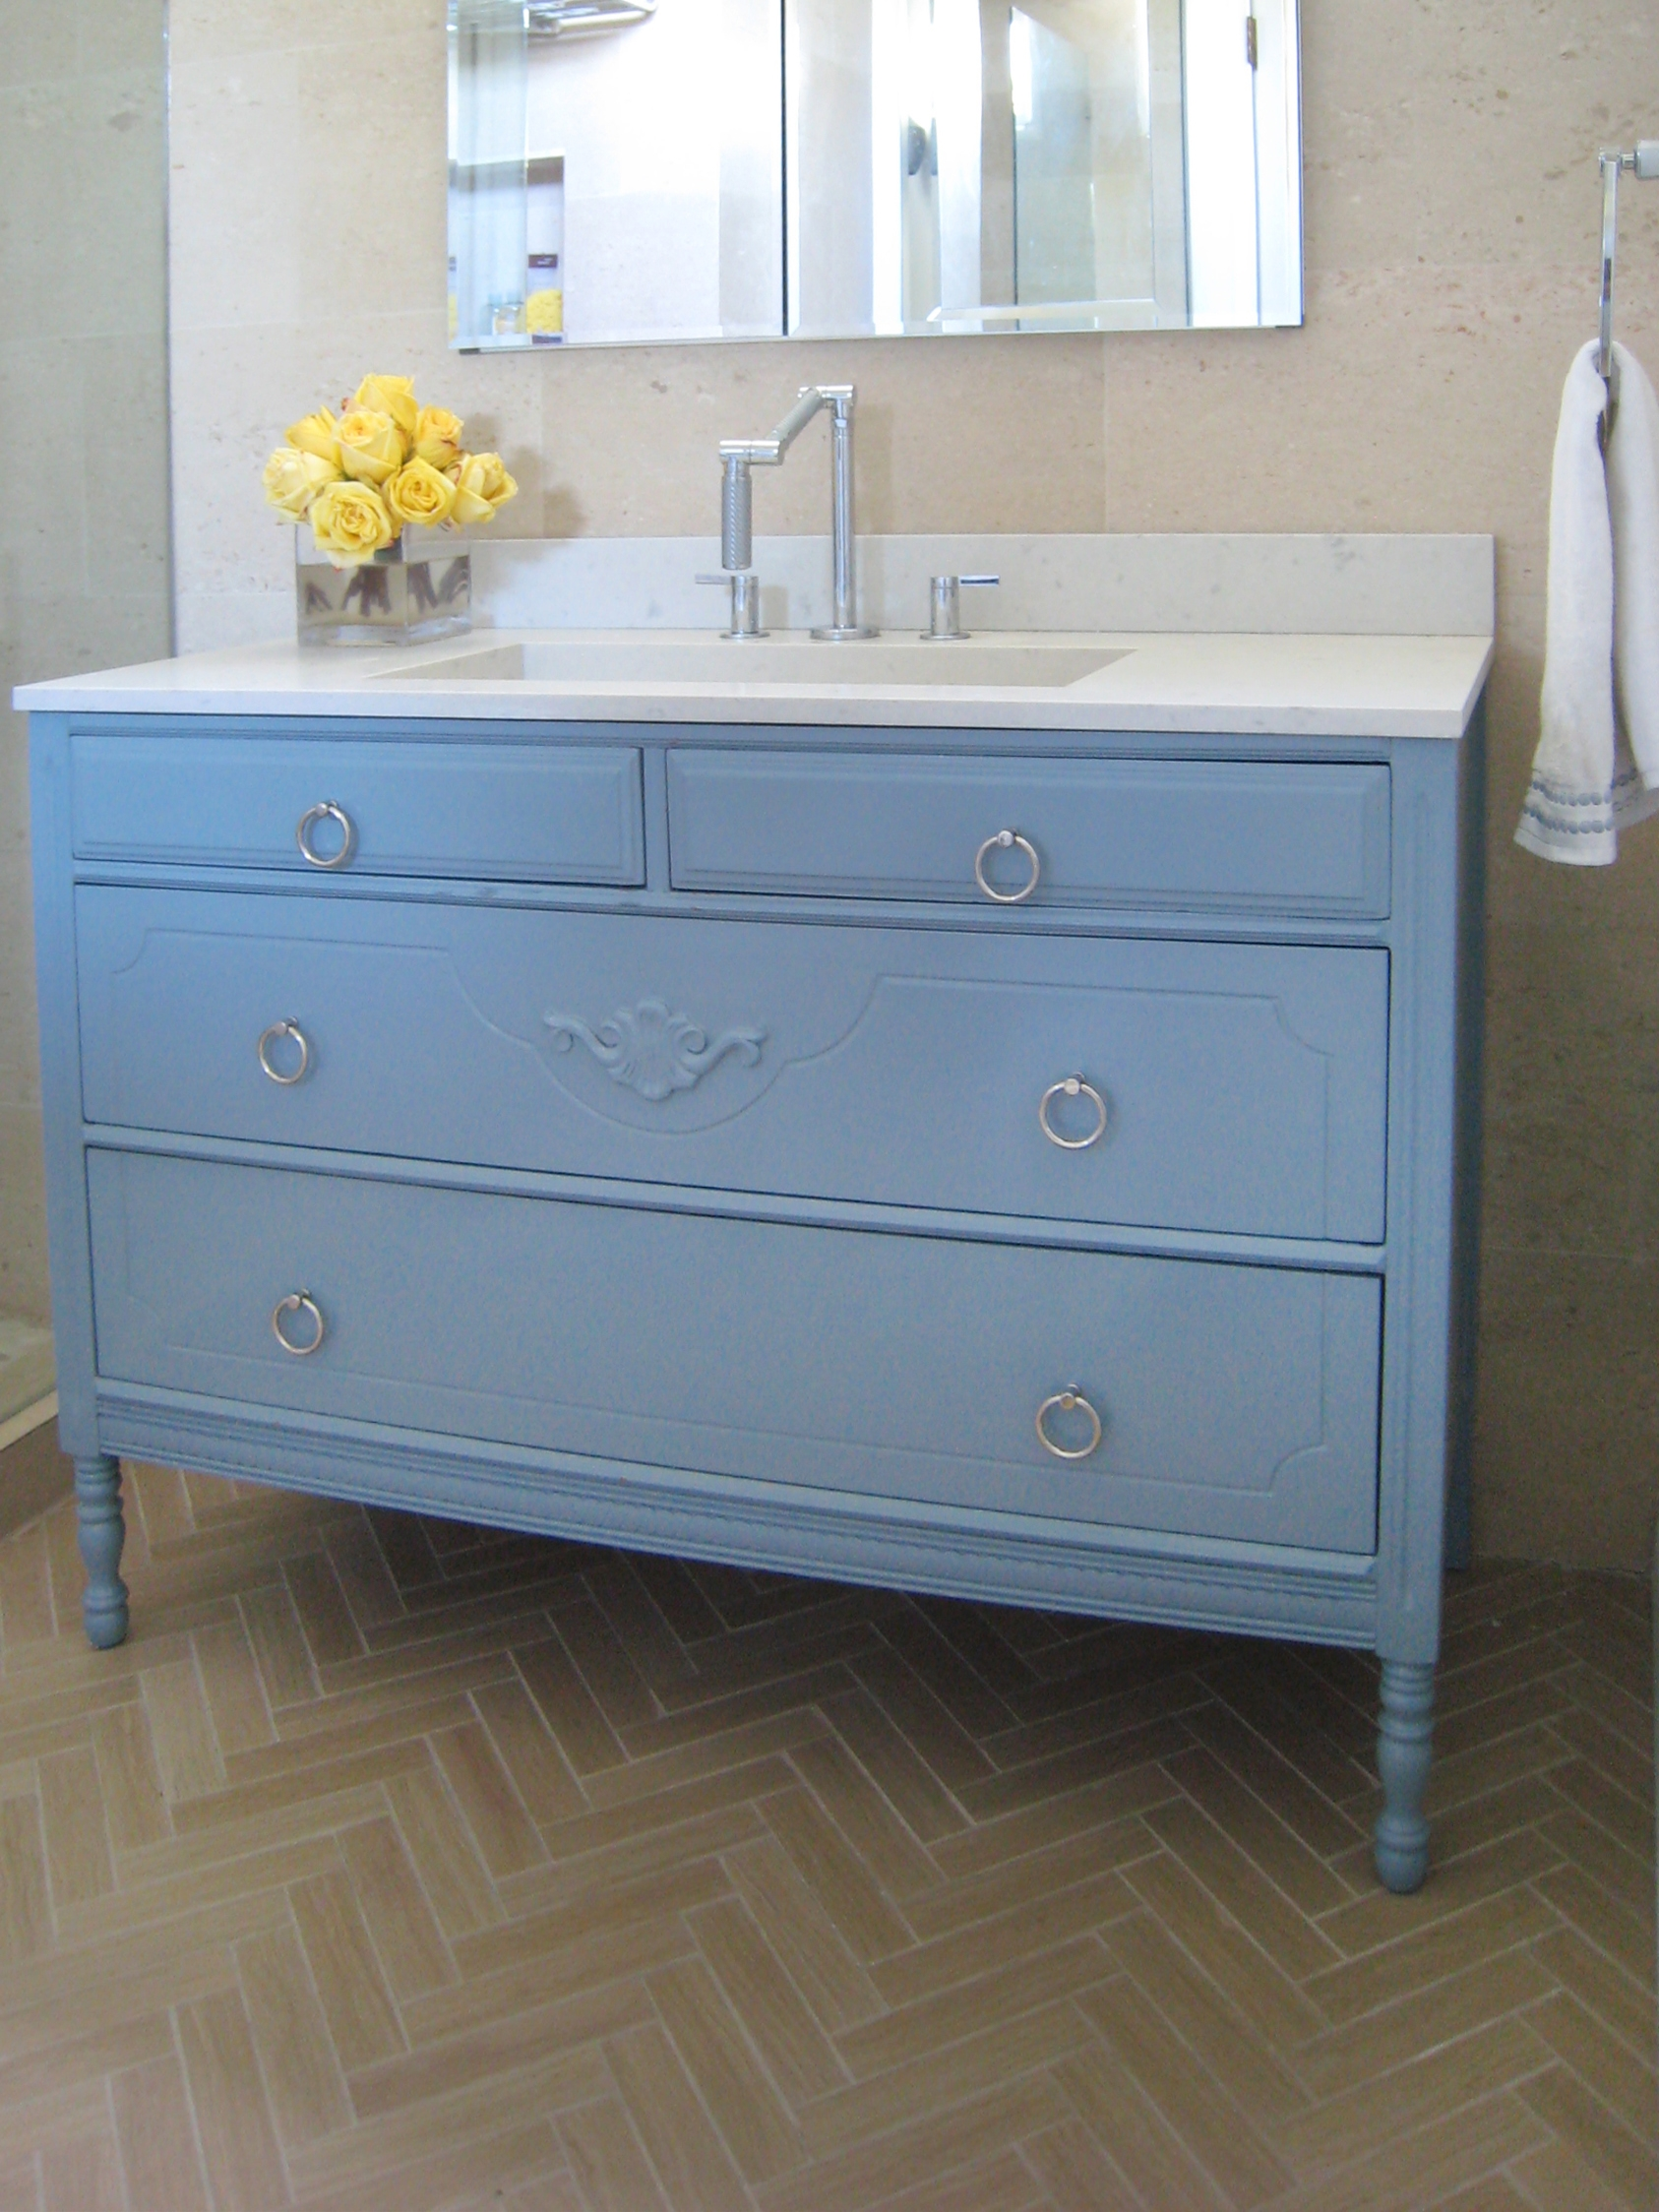 Small Bathroom Cabinet Drawers